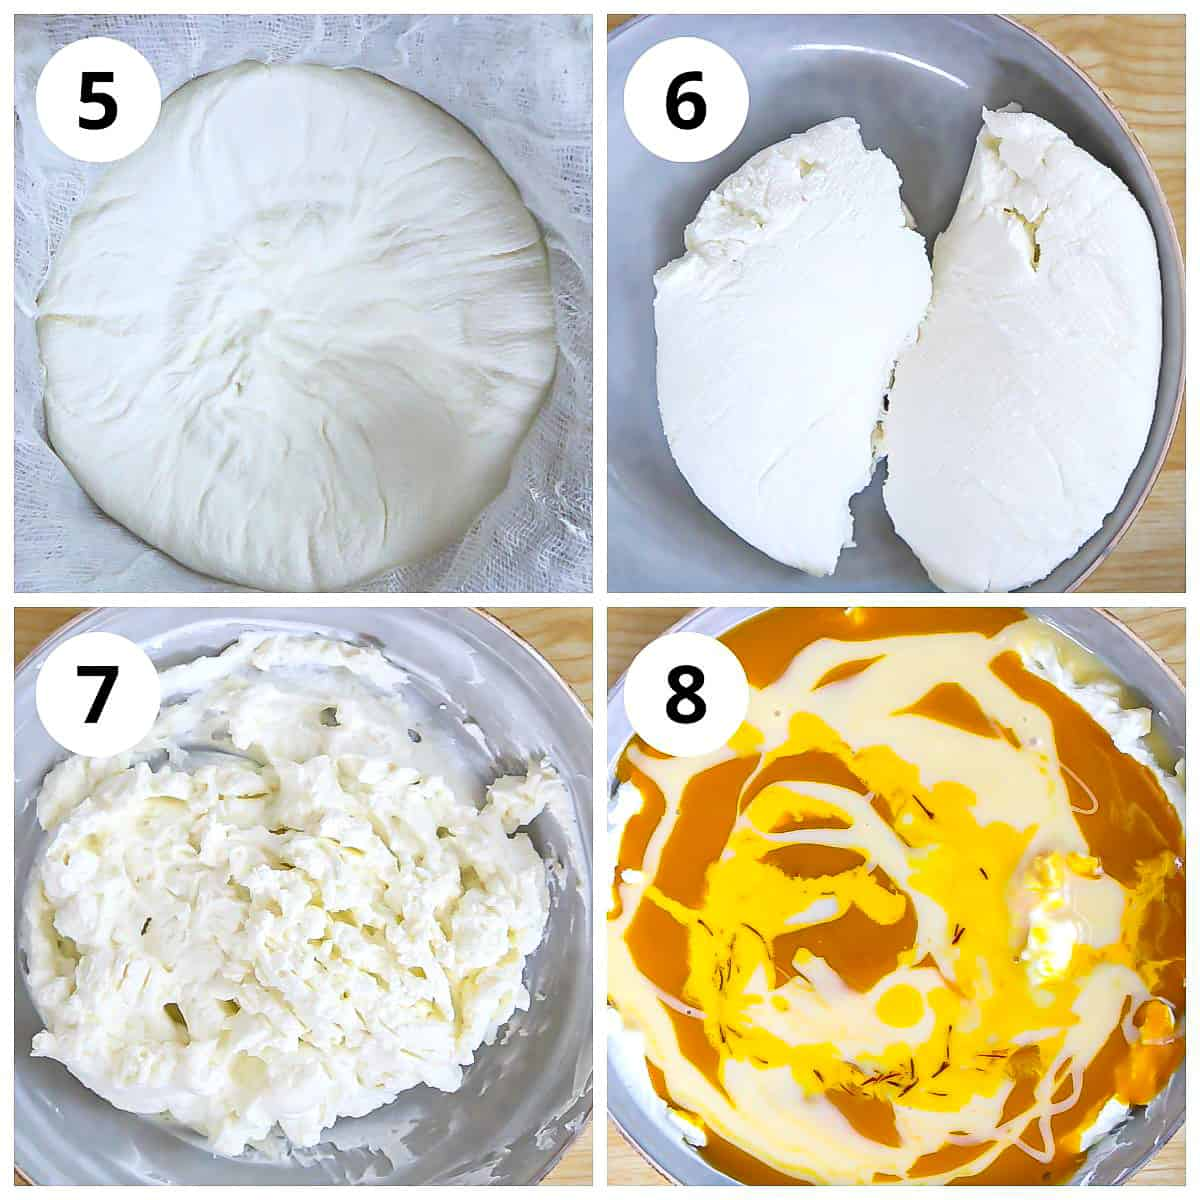 Steps for mixing the hung yogurt with mango pulp, condensed milk and saffron milk